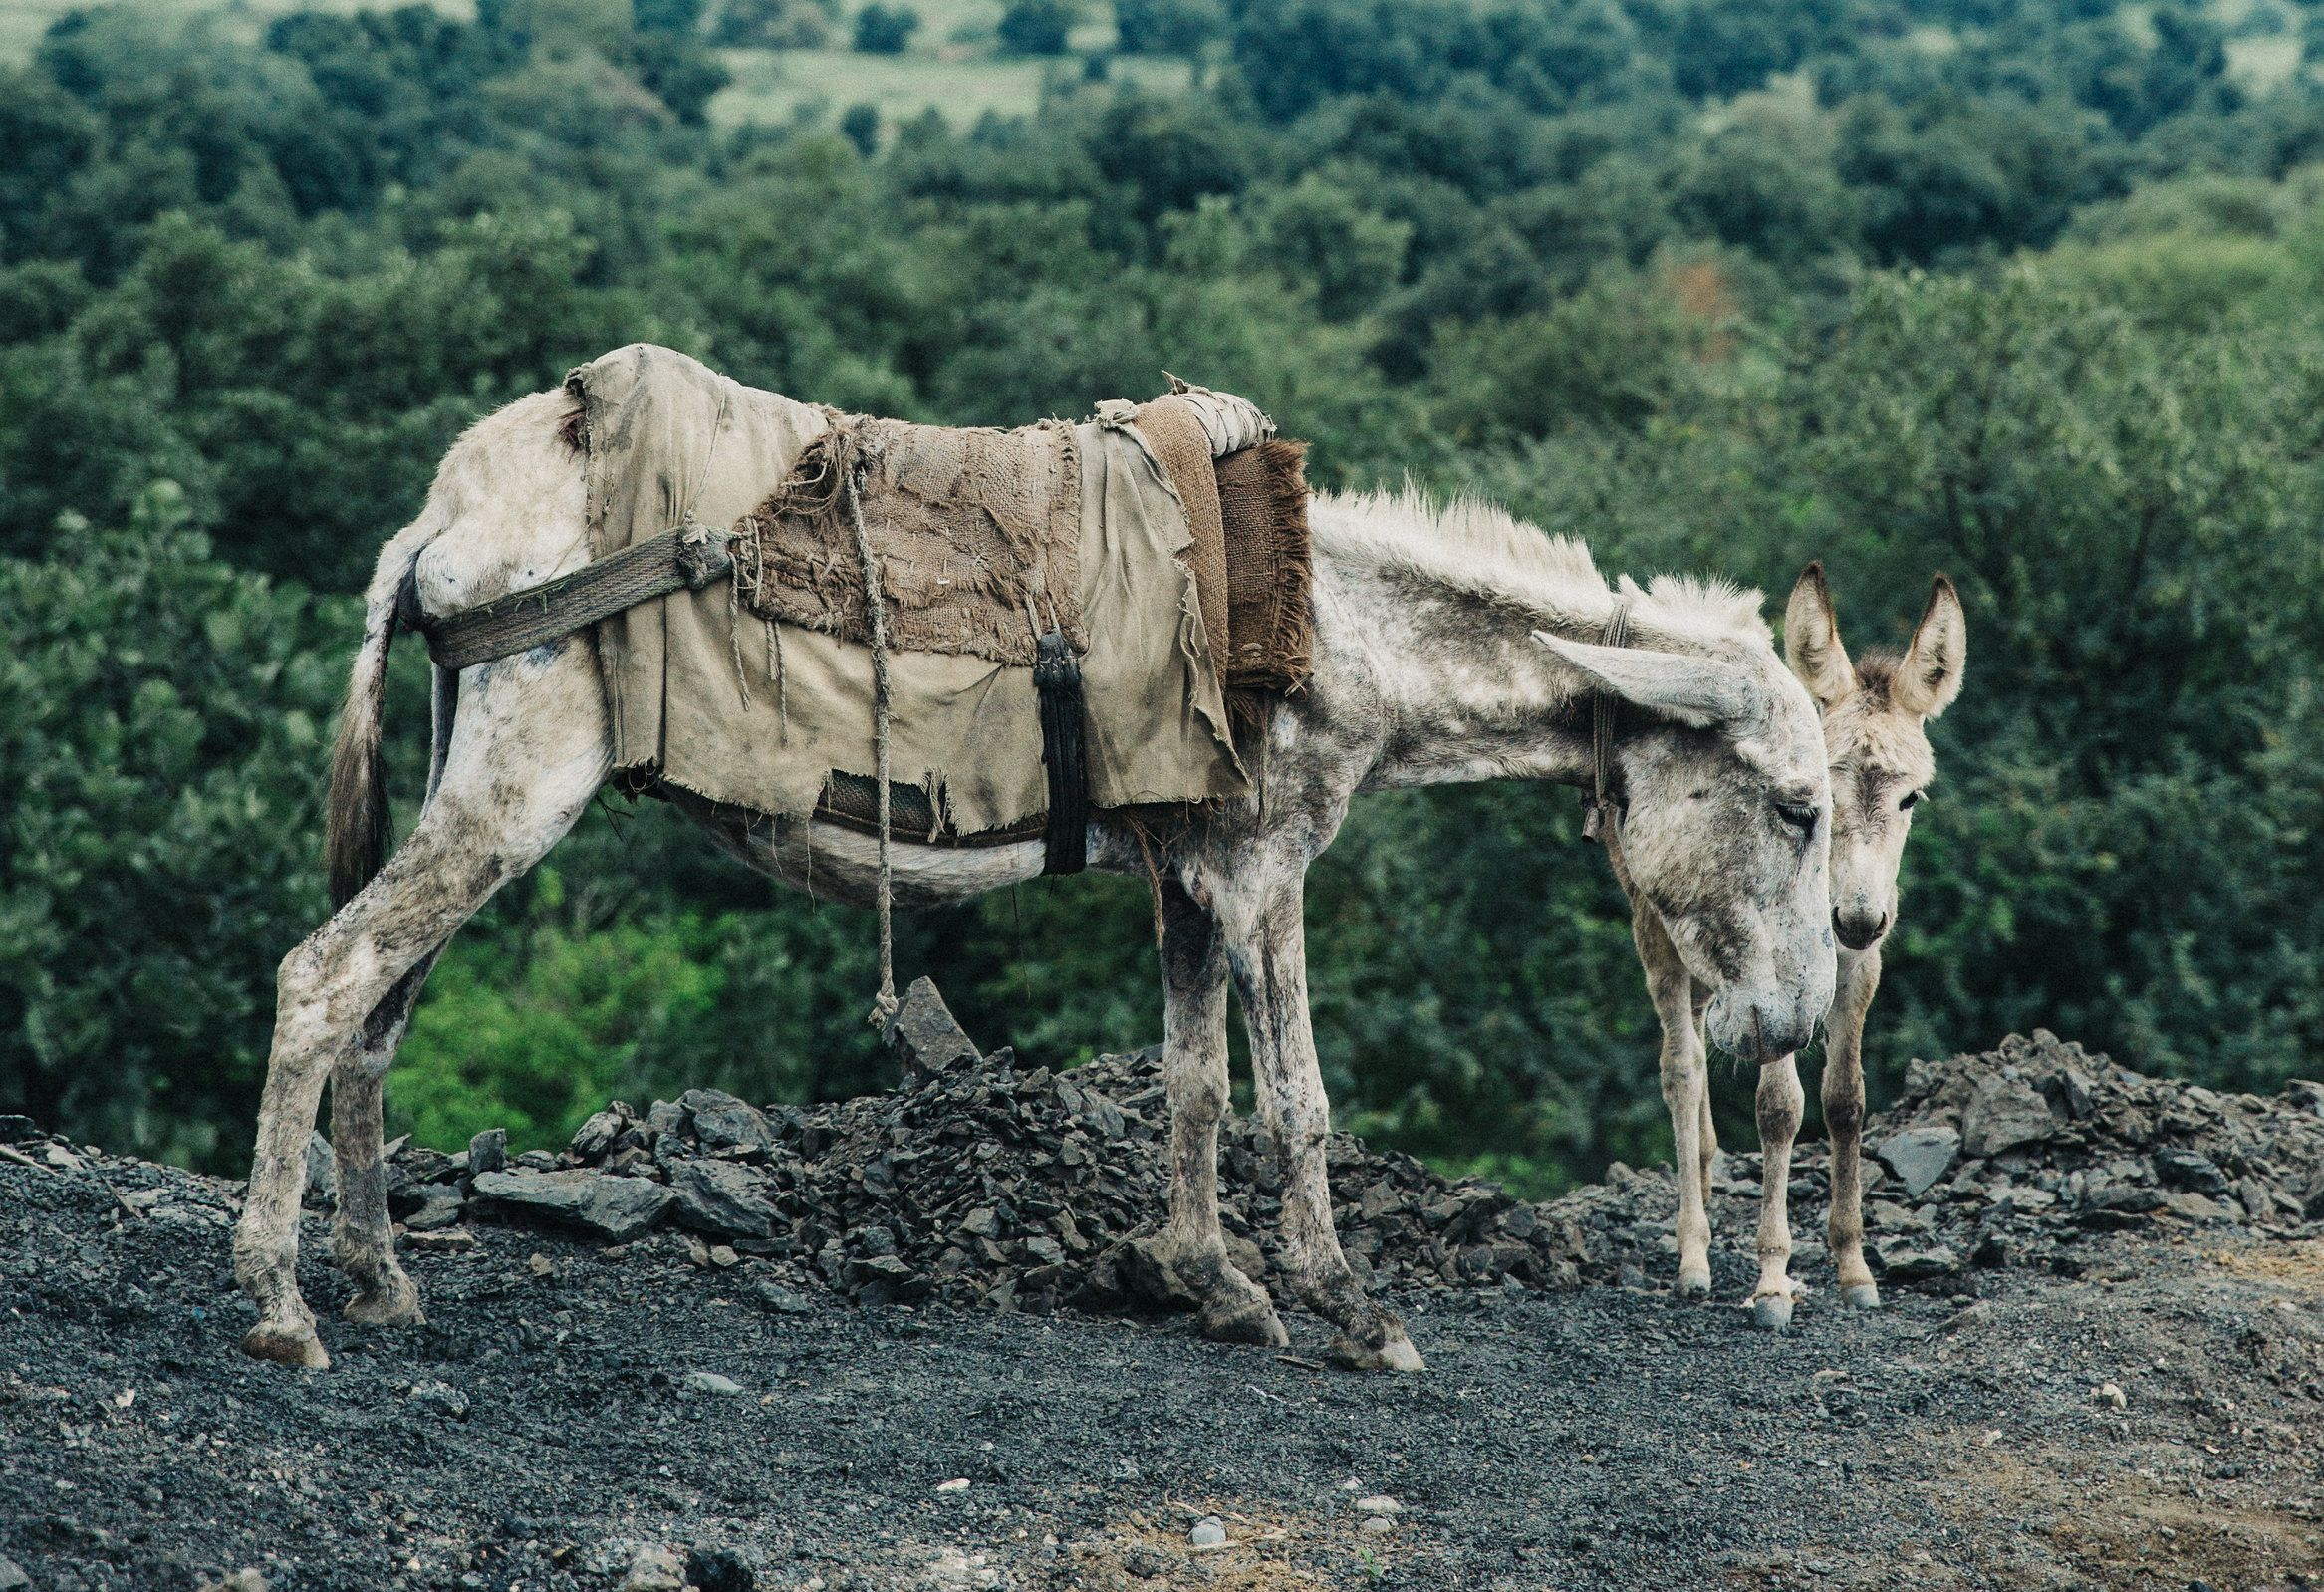 A malnourished mare works in a coal mine in Pakistan all day while also trying to nurse her foal.  Her body's limited energy is expended trying to produce milk, leaving nothing in store to get her through her very strenuous job hauling rocks and coal.